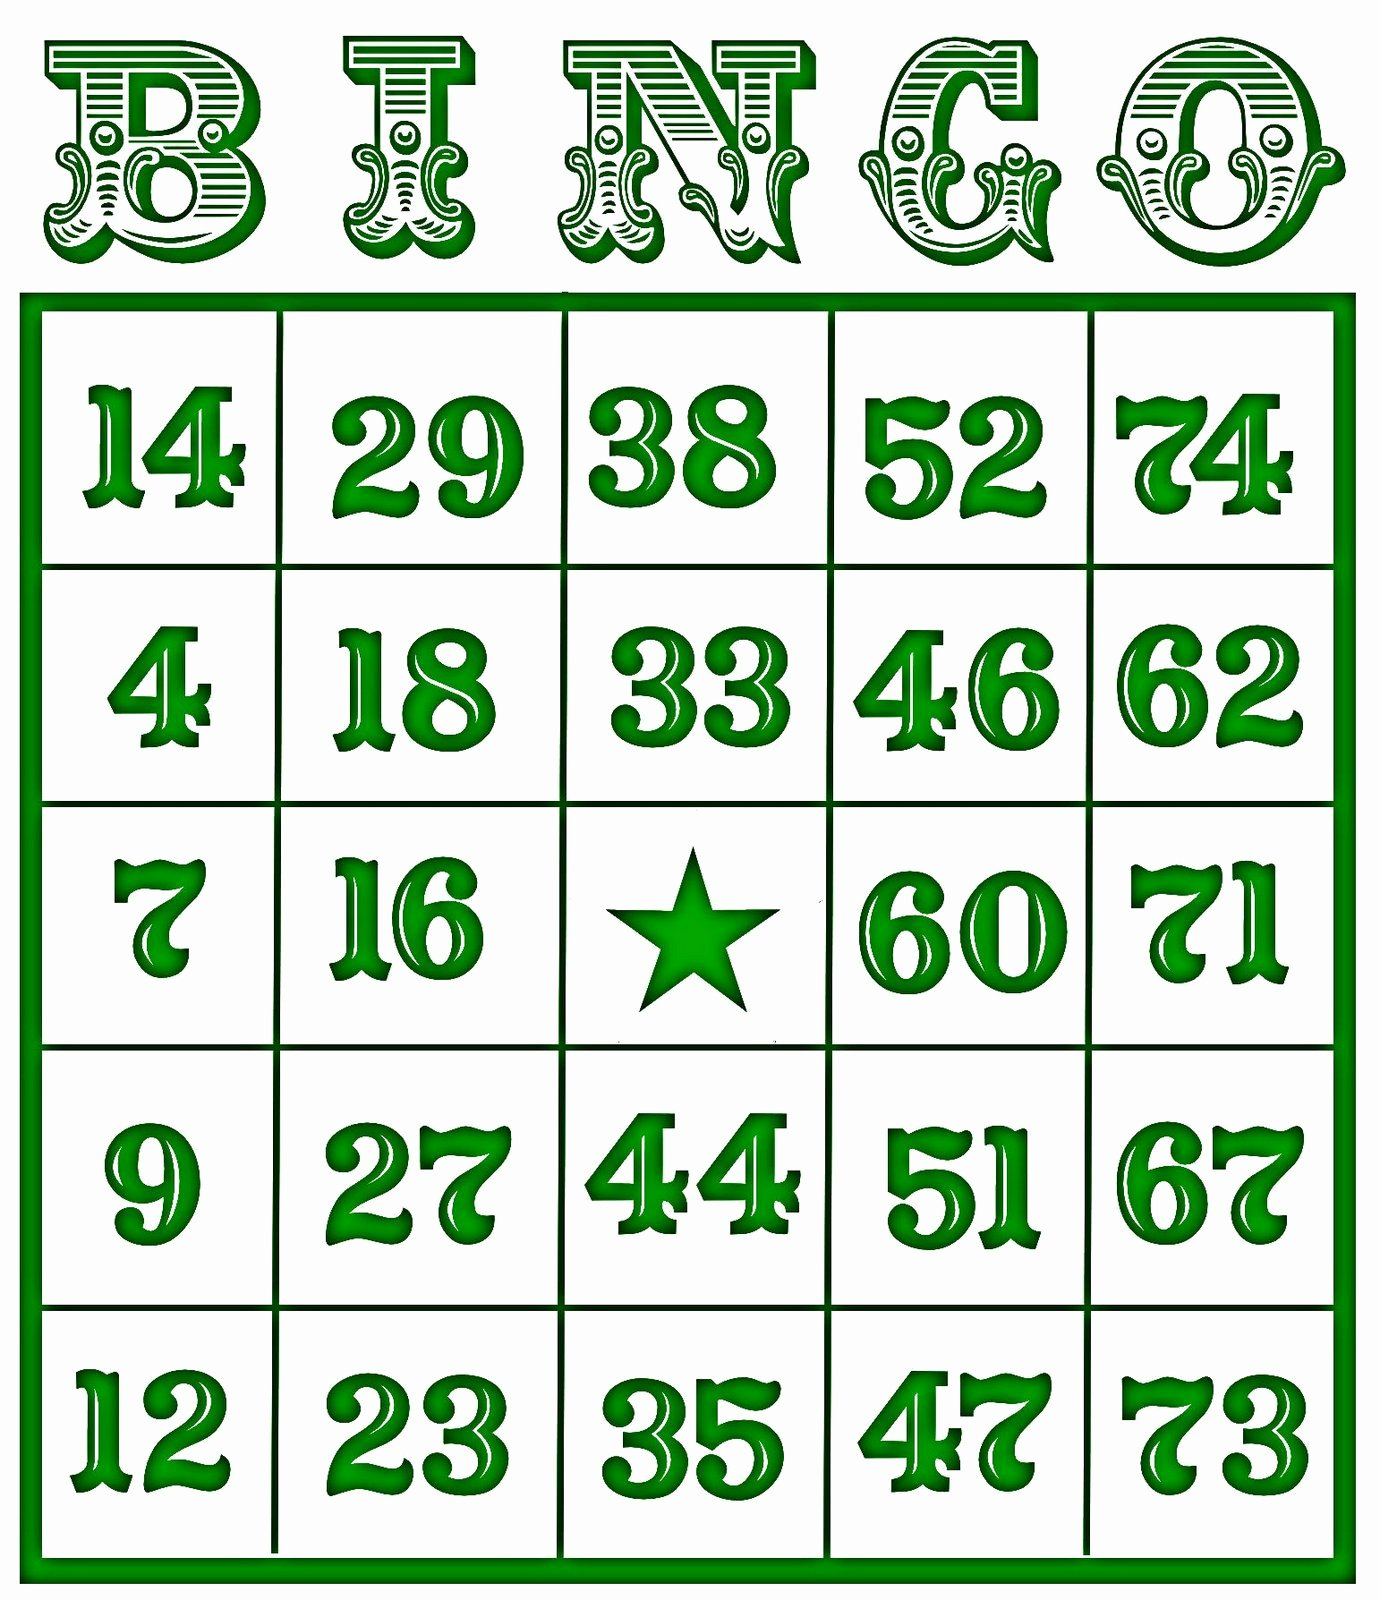 Free Printable Bingo Boards Awesome Christine Zani Bingo Card Printables to